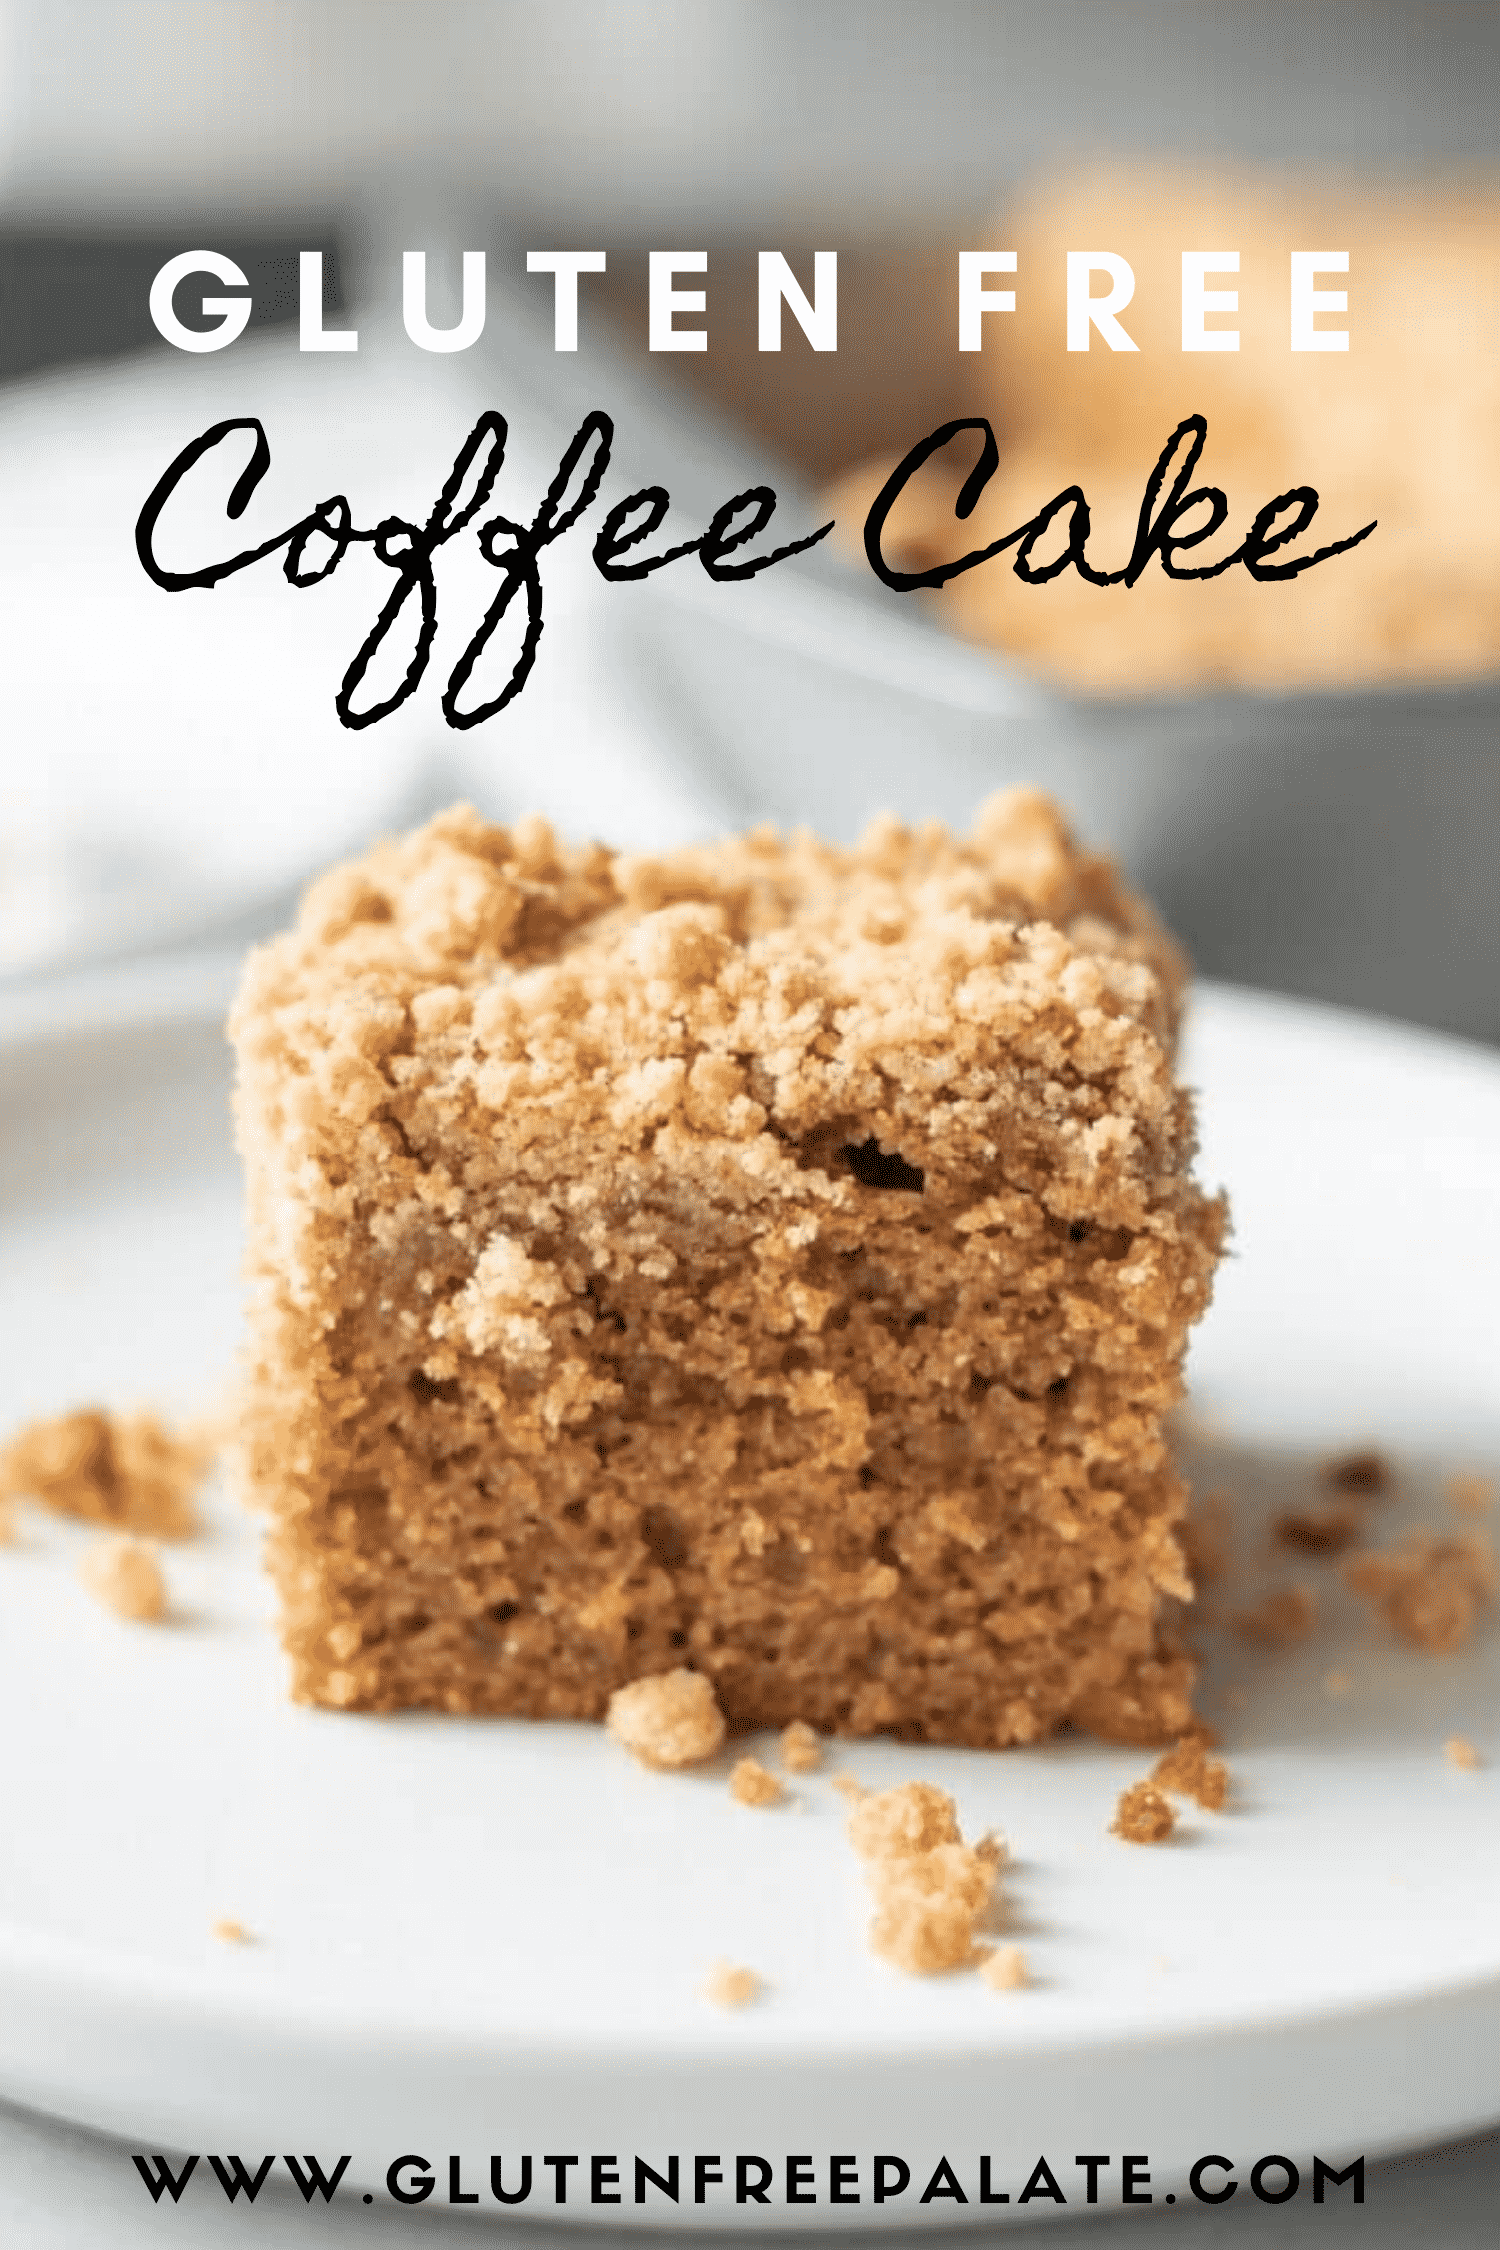 a square piece of coffee cake on a white plate. Text overlay states Gluten Free Coffee Cake